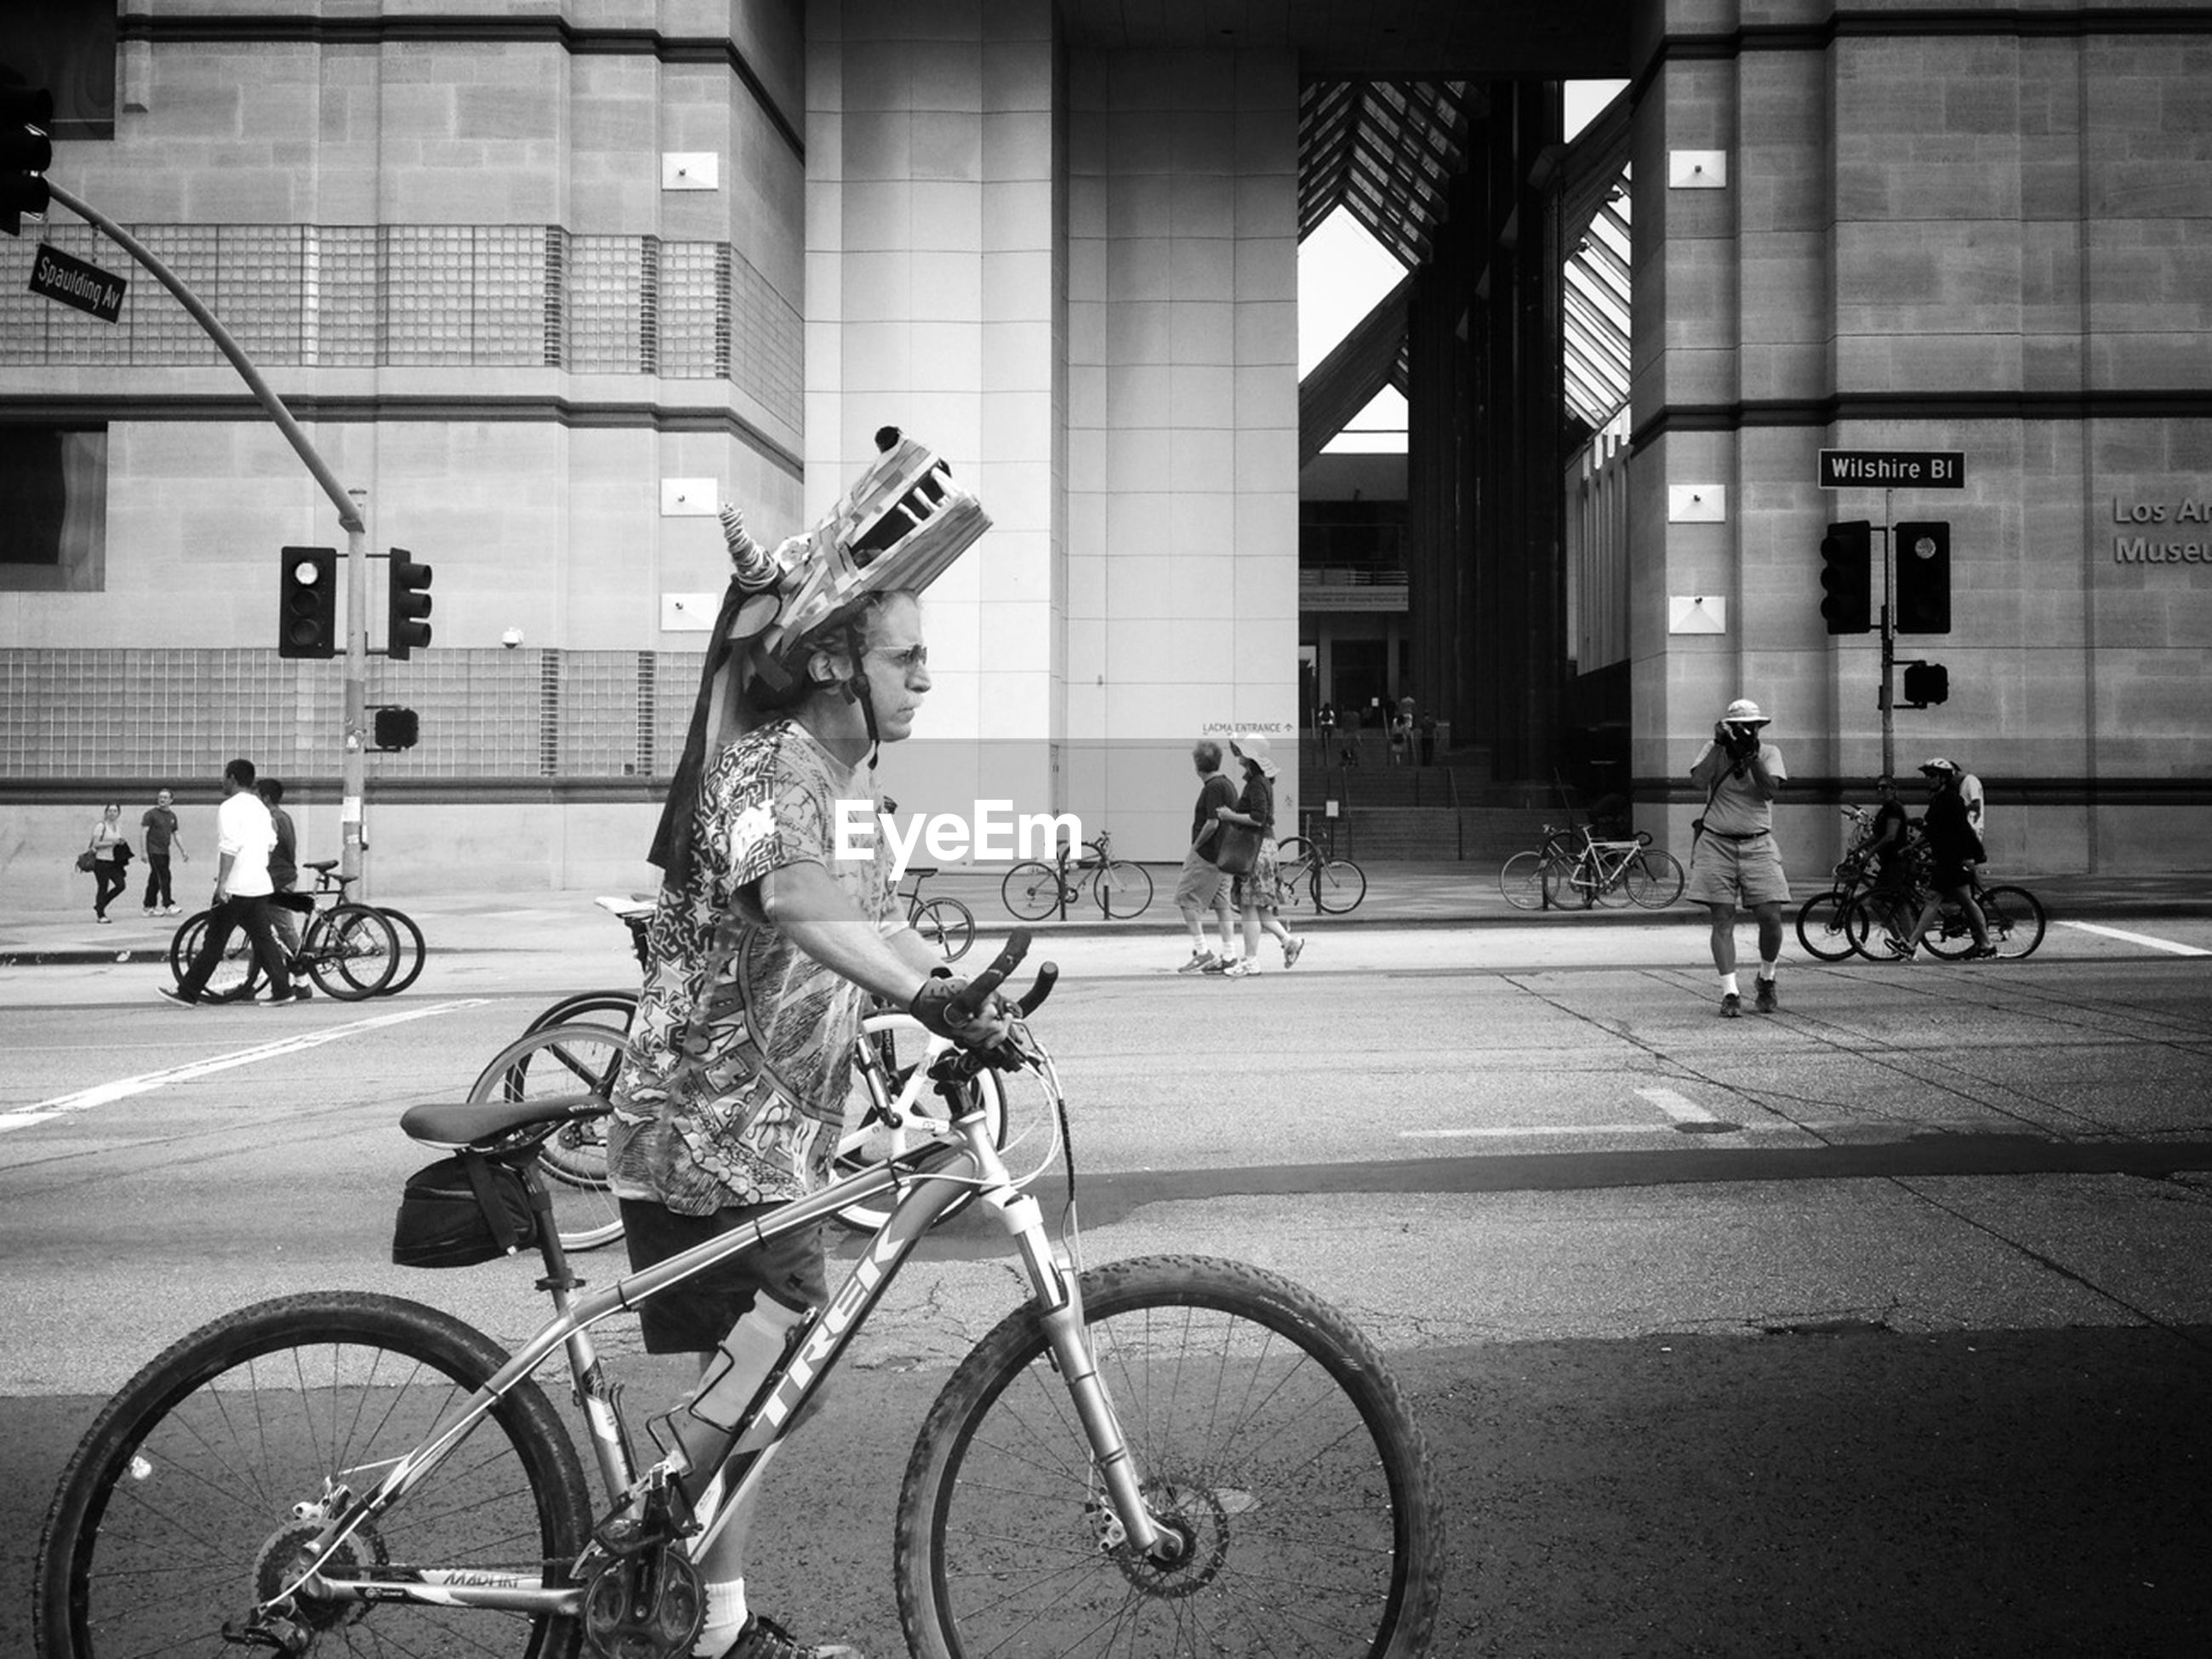 bicycle, transportation, mode of transport, riding, land vehicle, men, street, building exterior, lifestyles, architecture, built structure, leisure activity, city, cycling, full length, city life, person, road